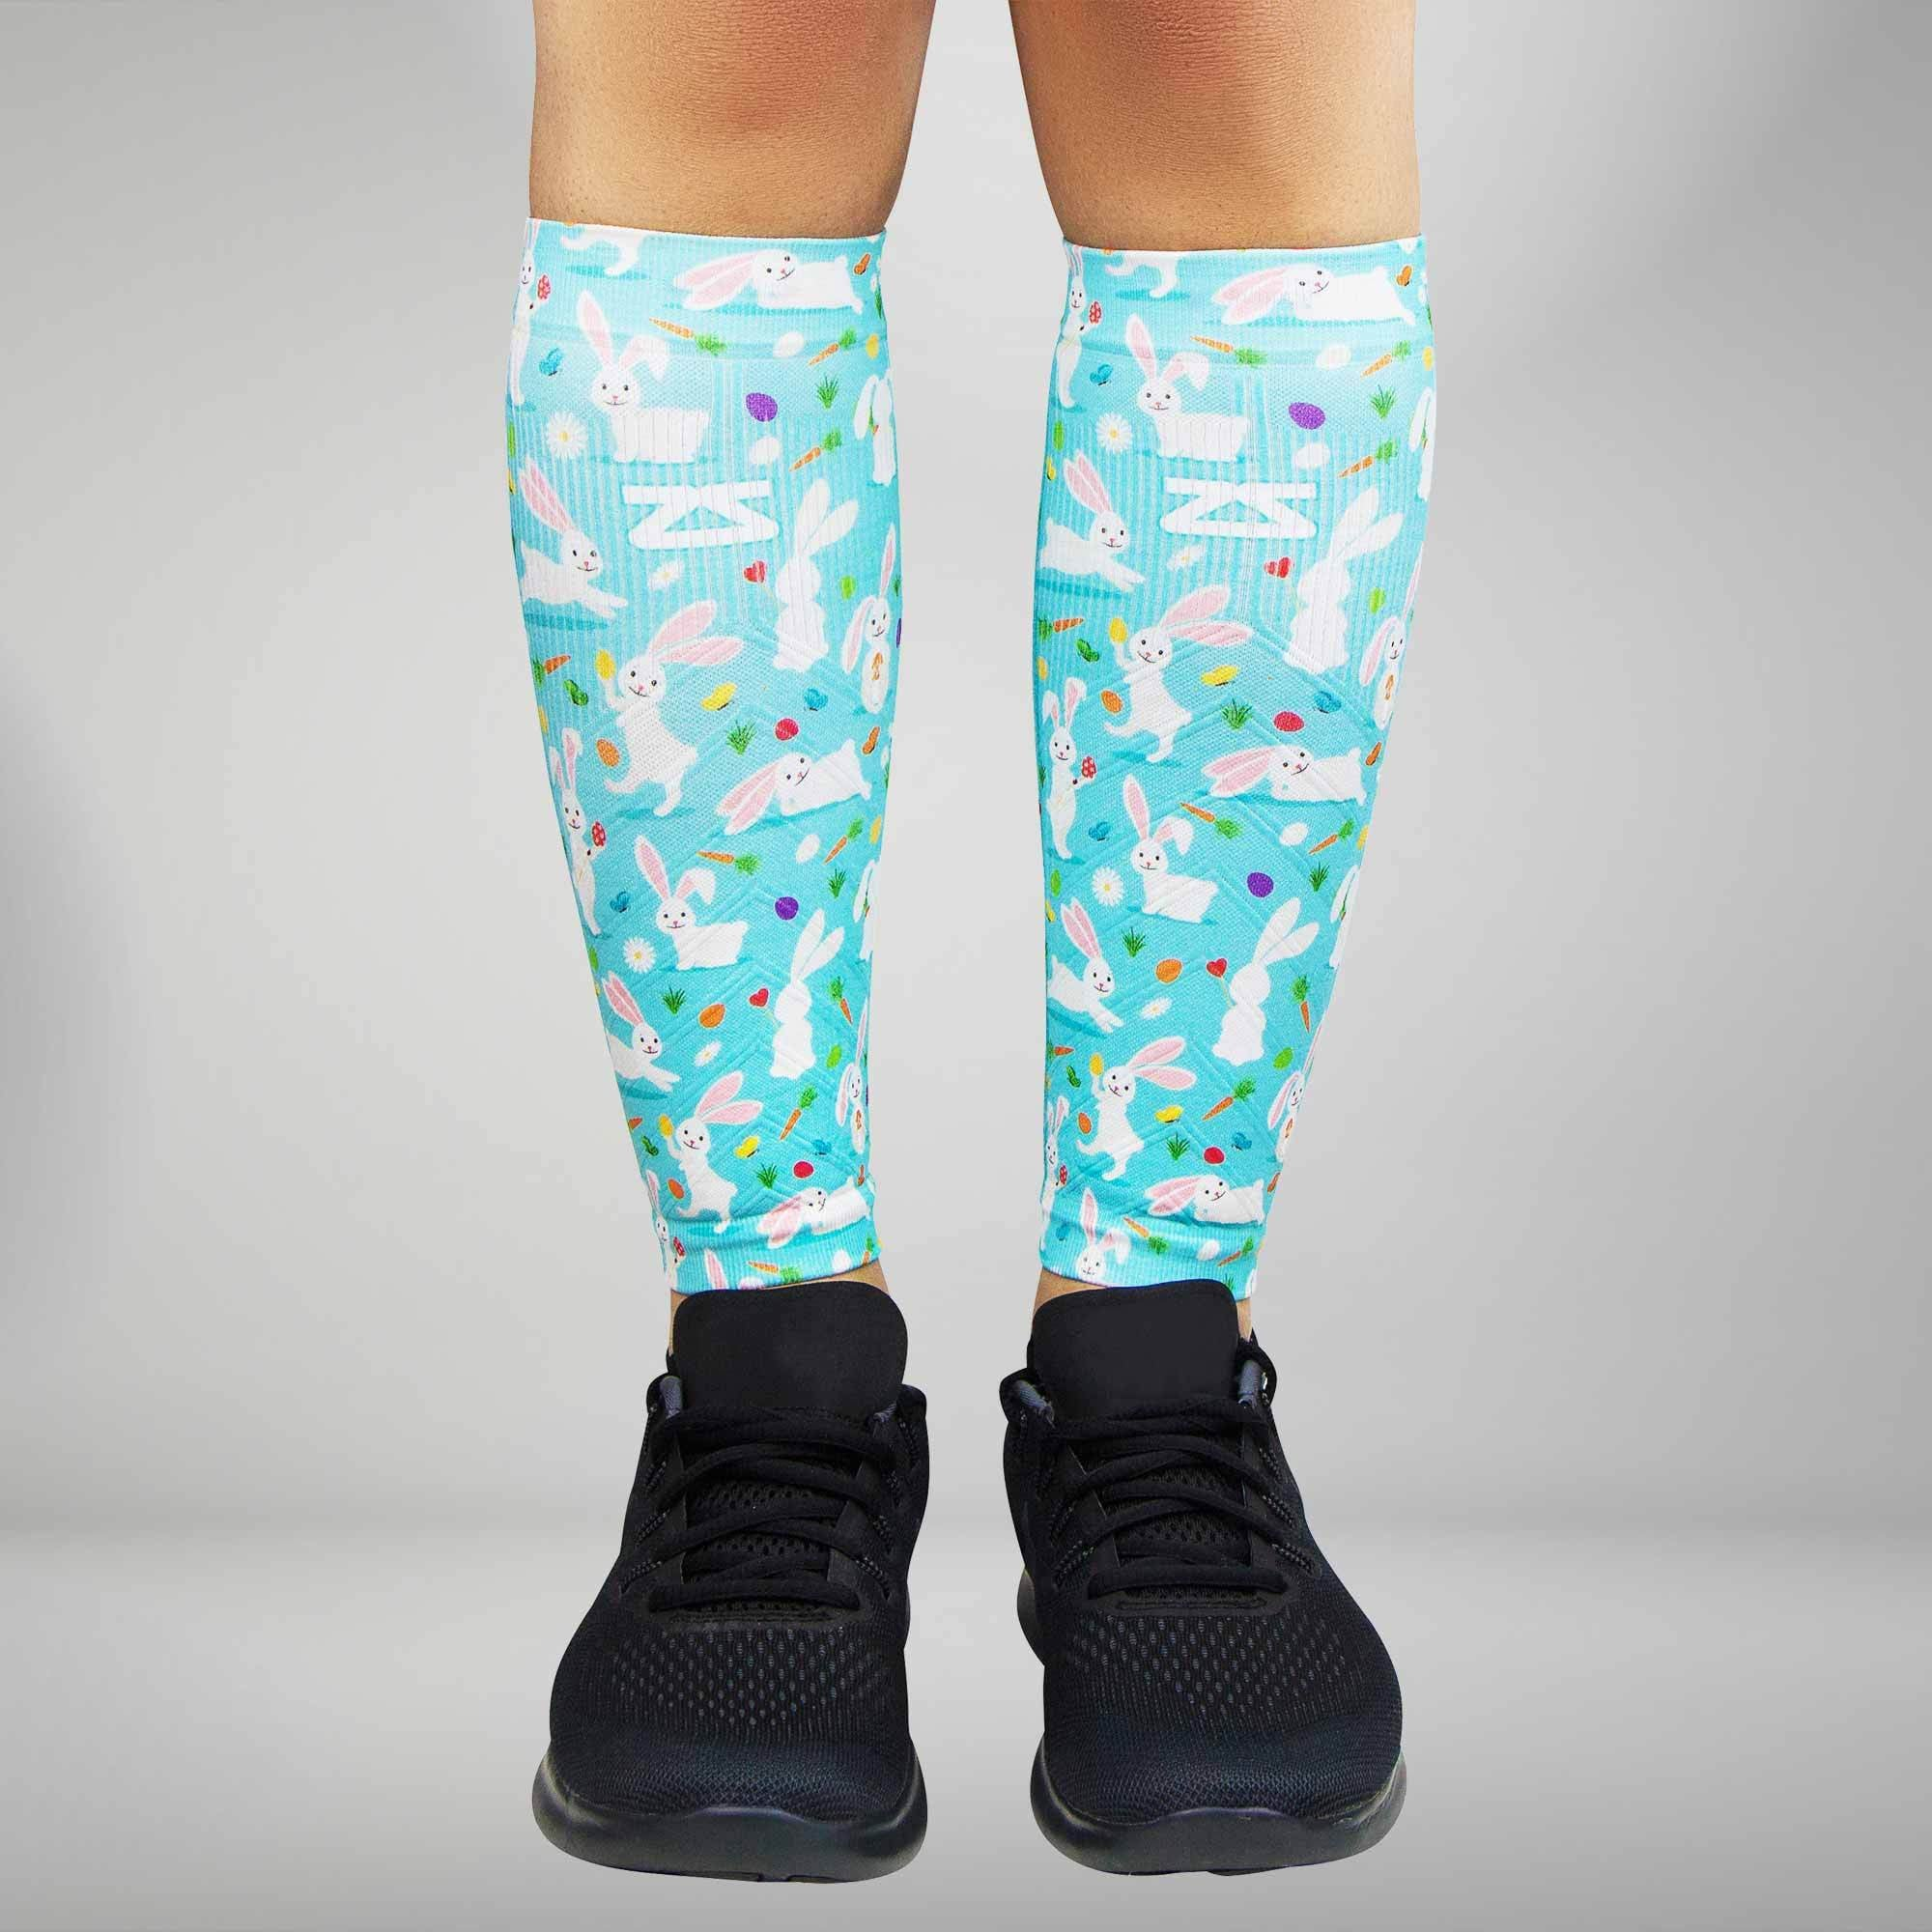 Happy Bunnies Compression Leg Sleeves